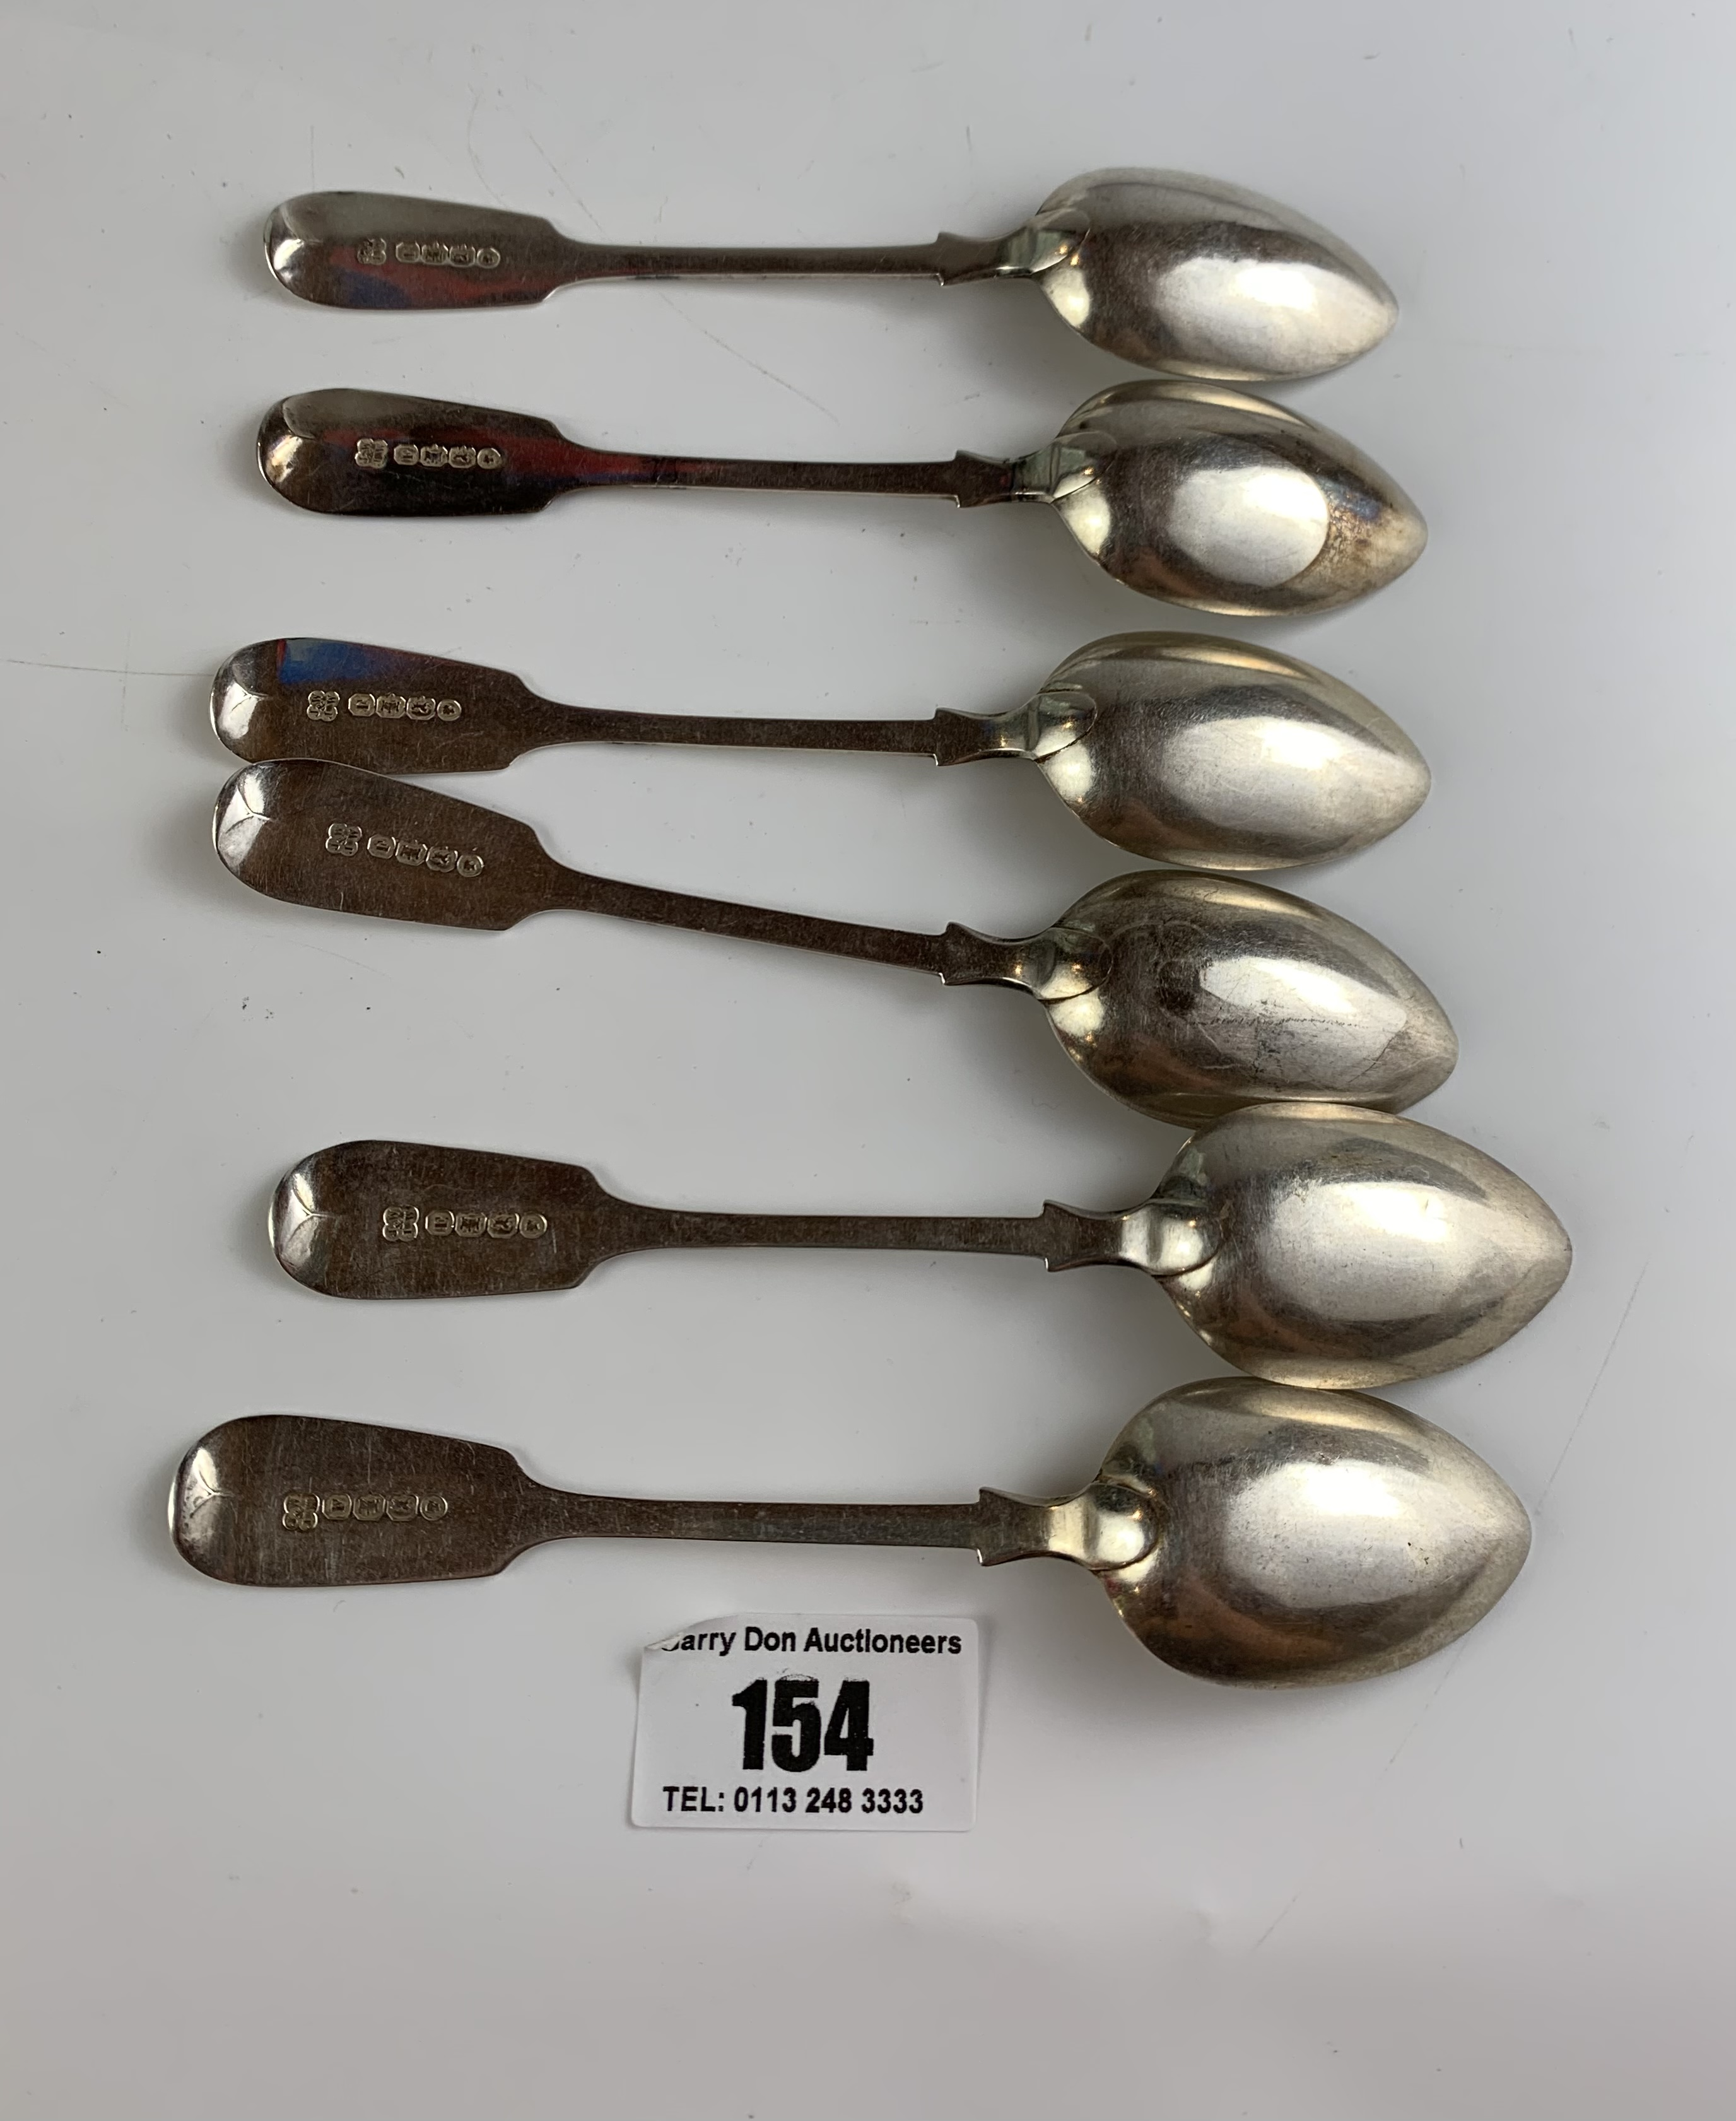 Set of 6 silver teaspoons, w: 3.37 ozt - Image 2 of 2